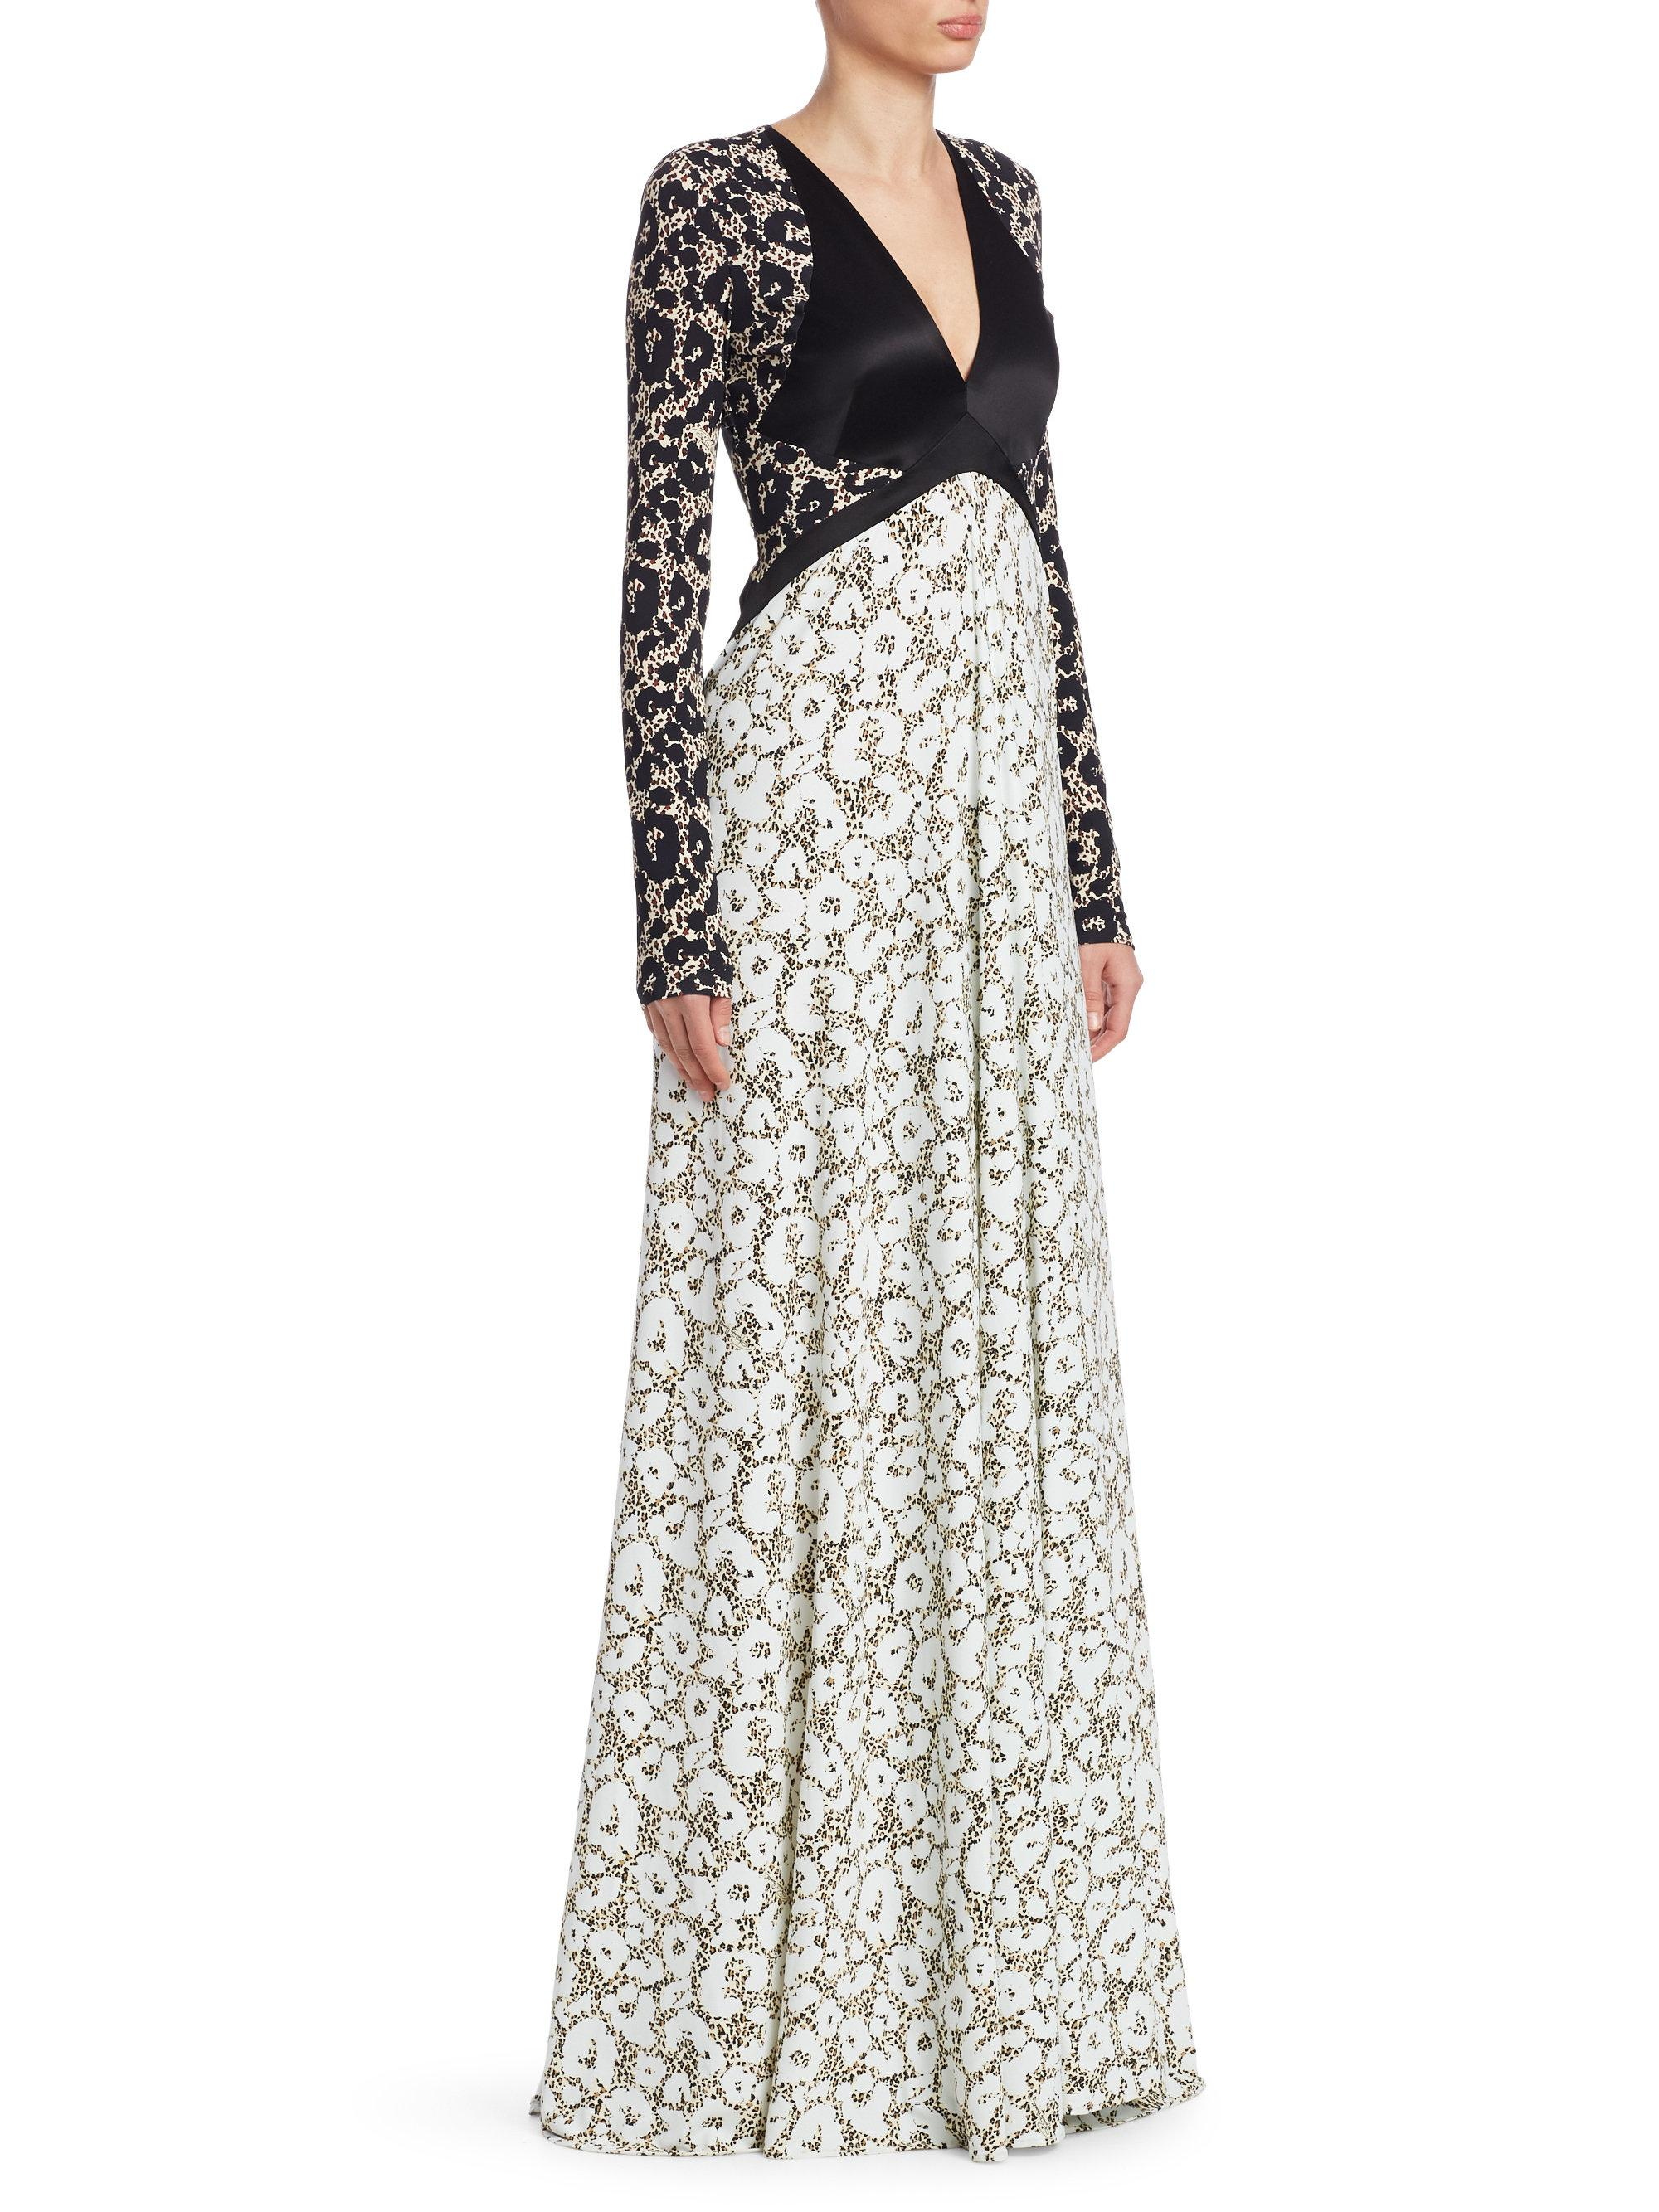 Lyst - Roberto Cavalli Leopard Print Panelled Gown